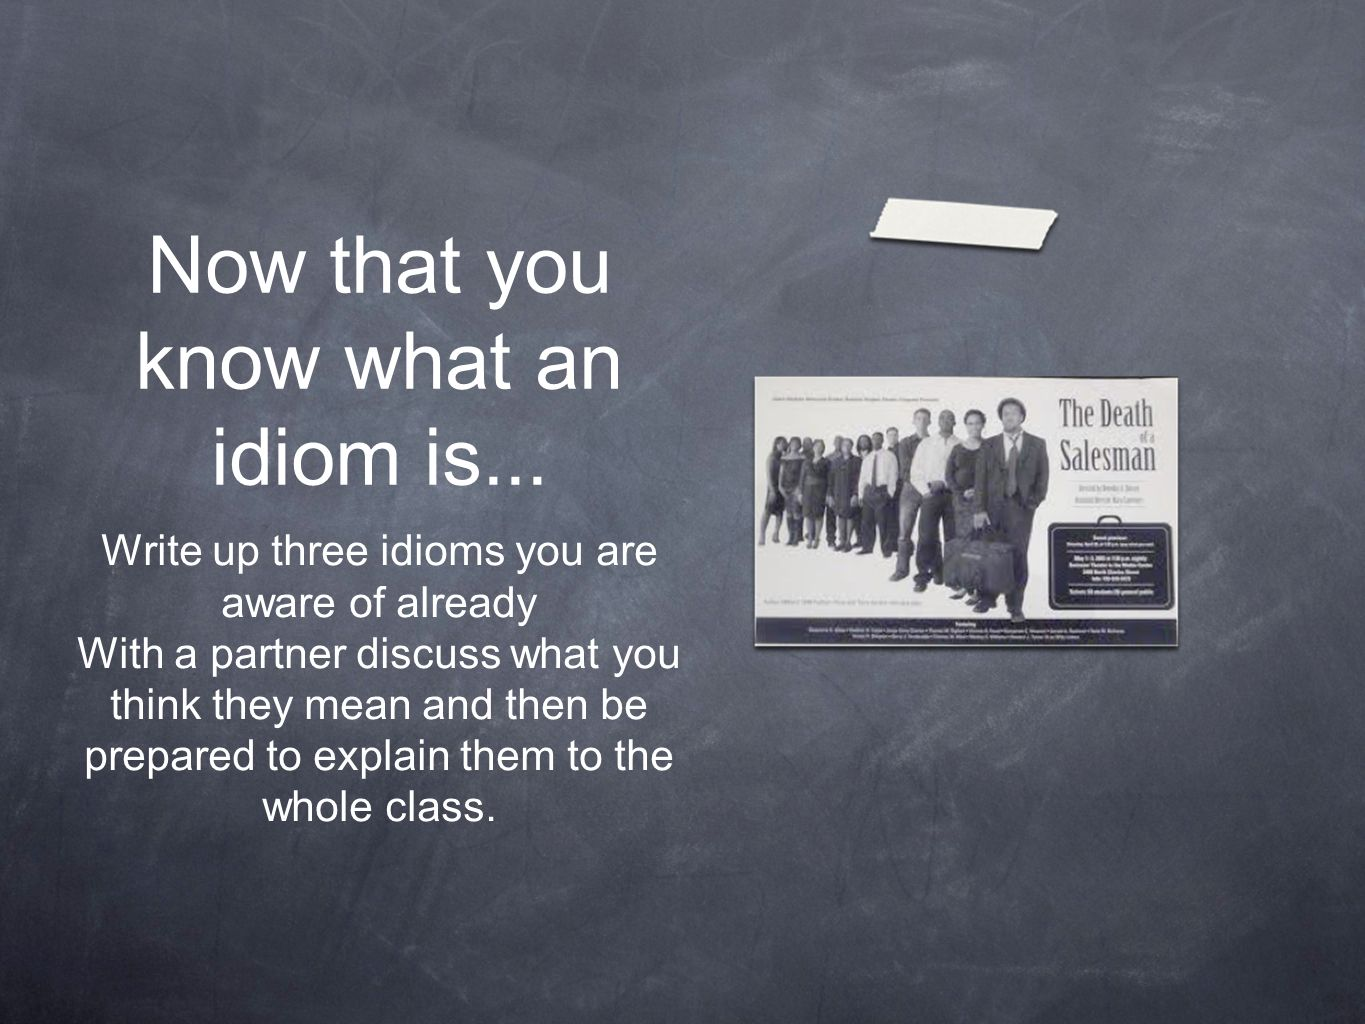 Now that you know what an idiom is...